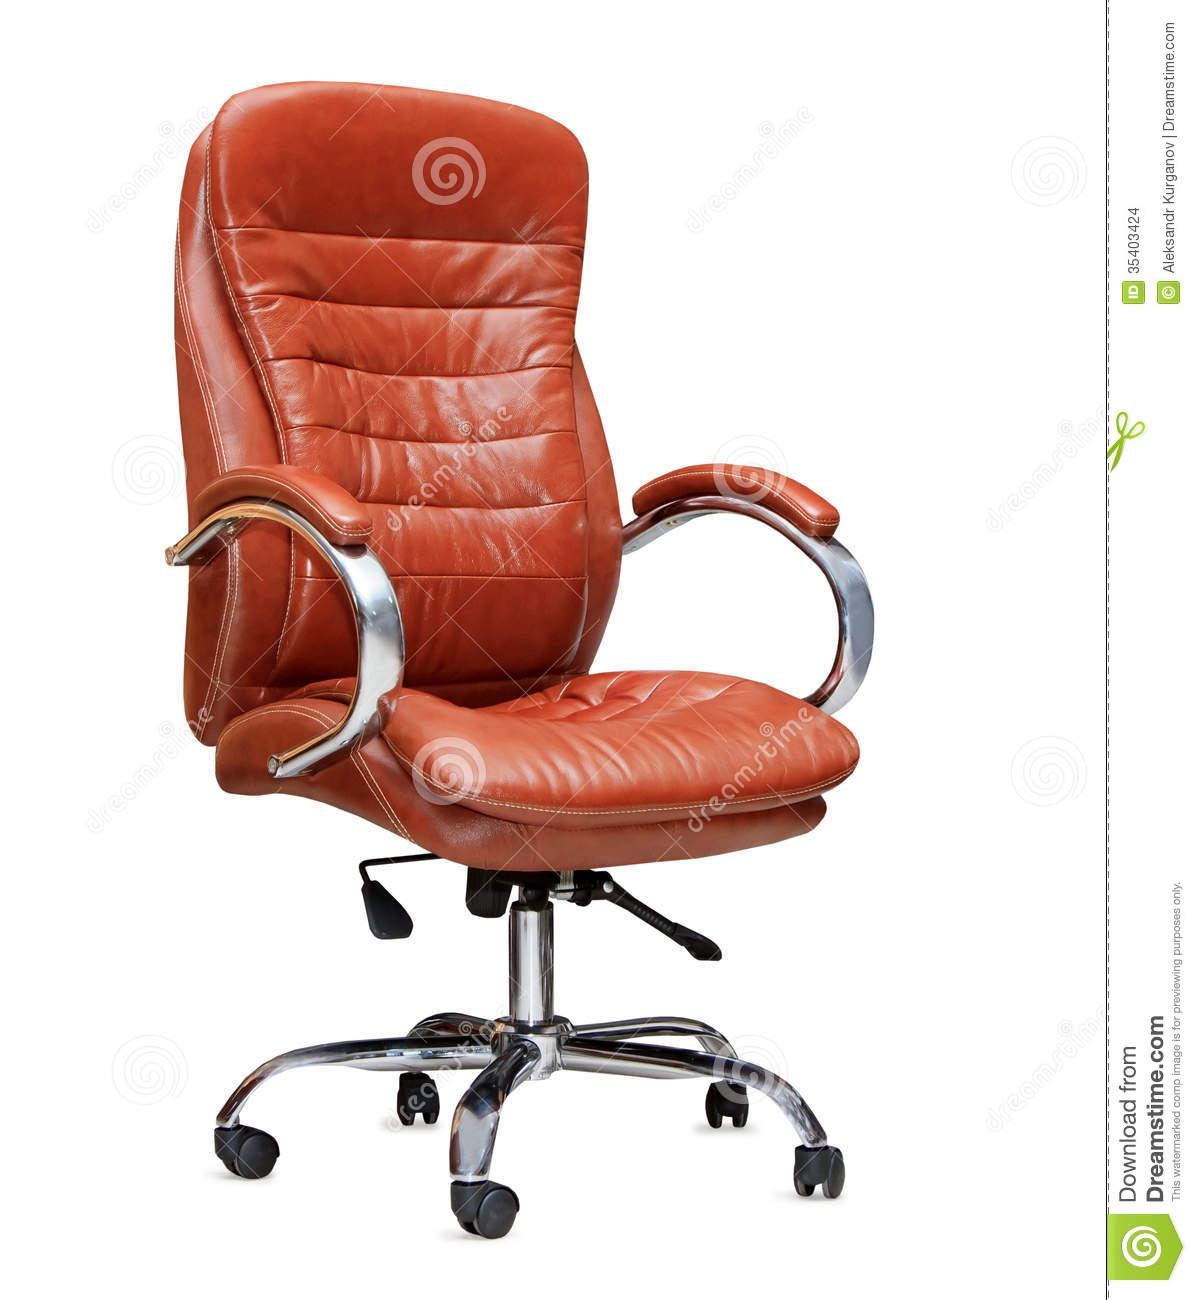 Attirant Download The Office Chair From Orange Leather. Isolated Stock Photo   Image  Of Executive,